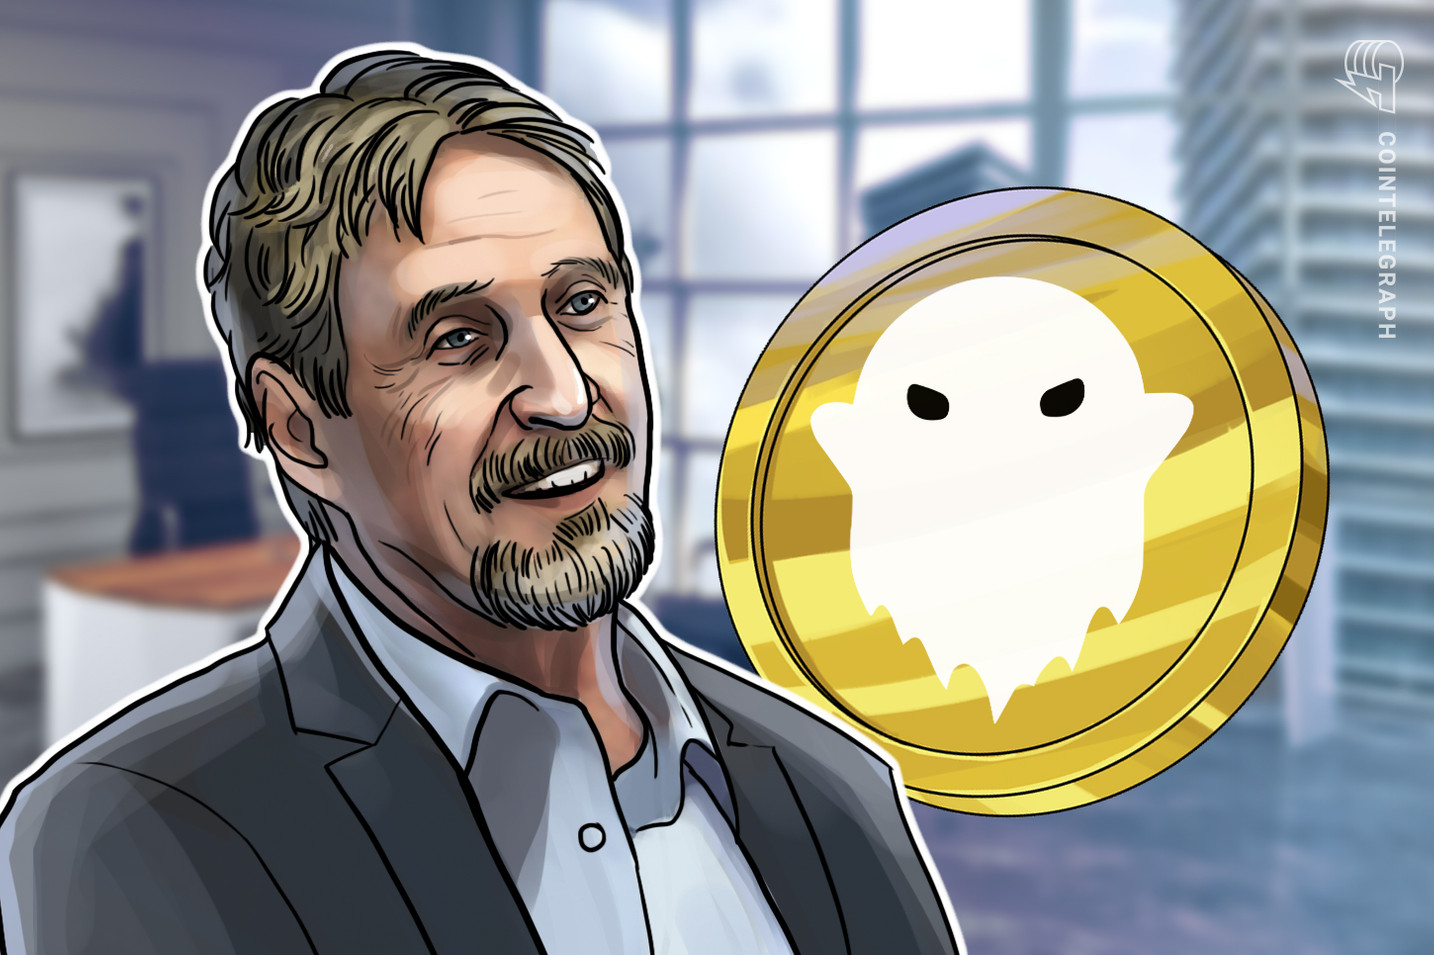 John McAfee clarifies he is still part of Ghost's ecosystem